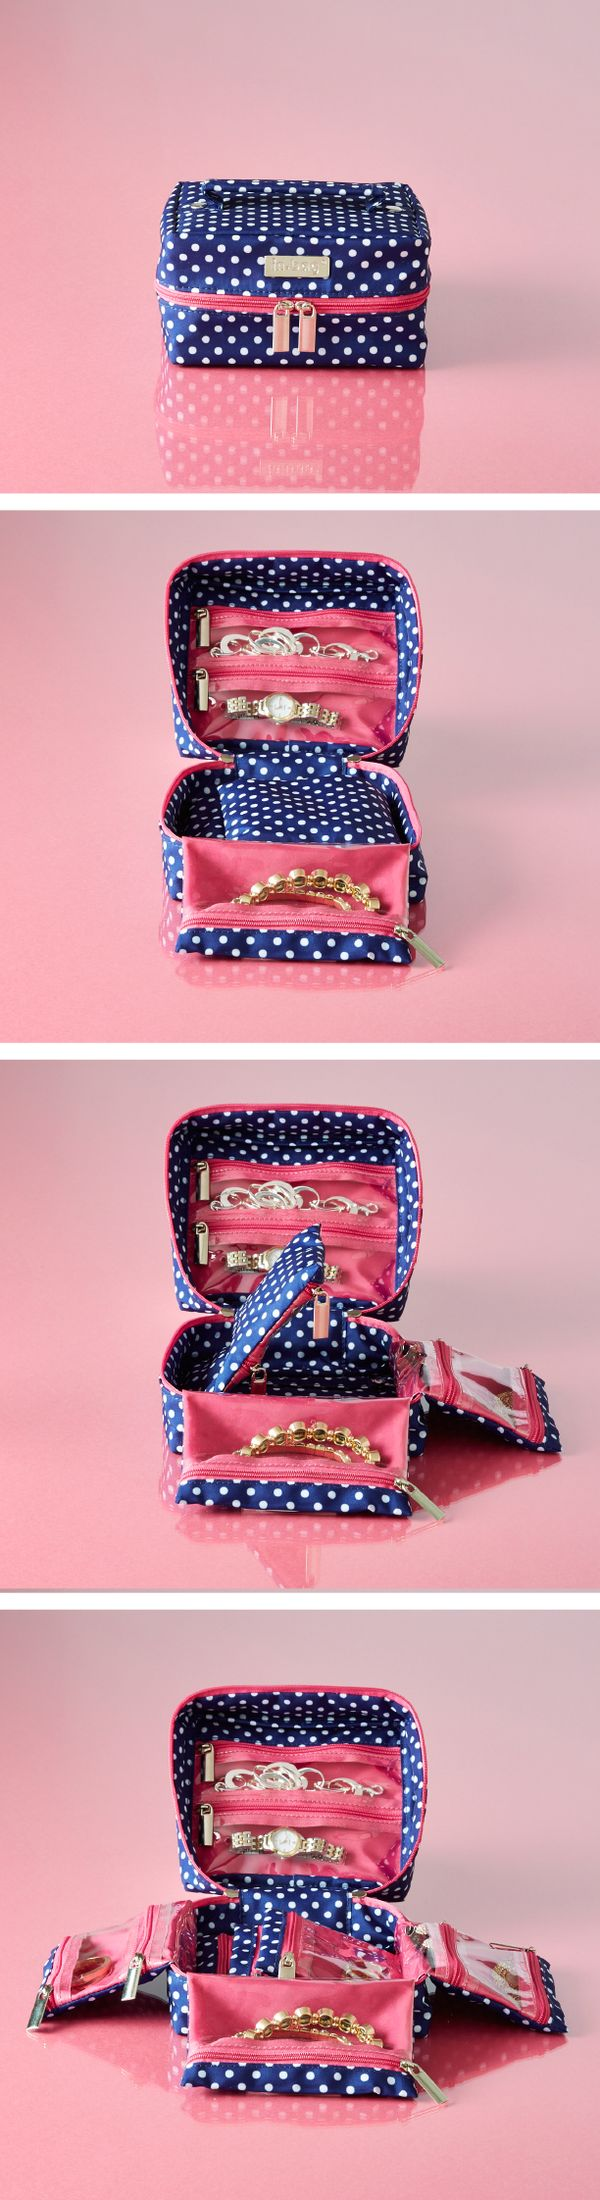 Pin on bags - Pinterest